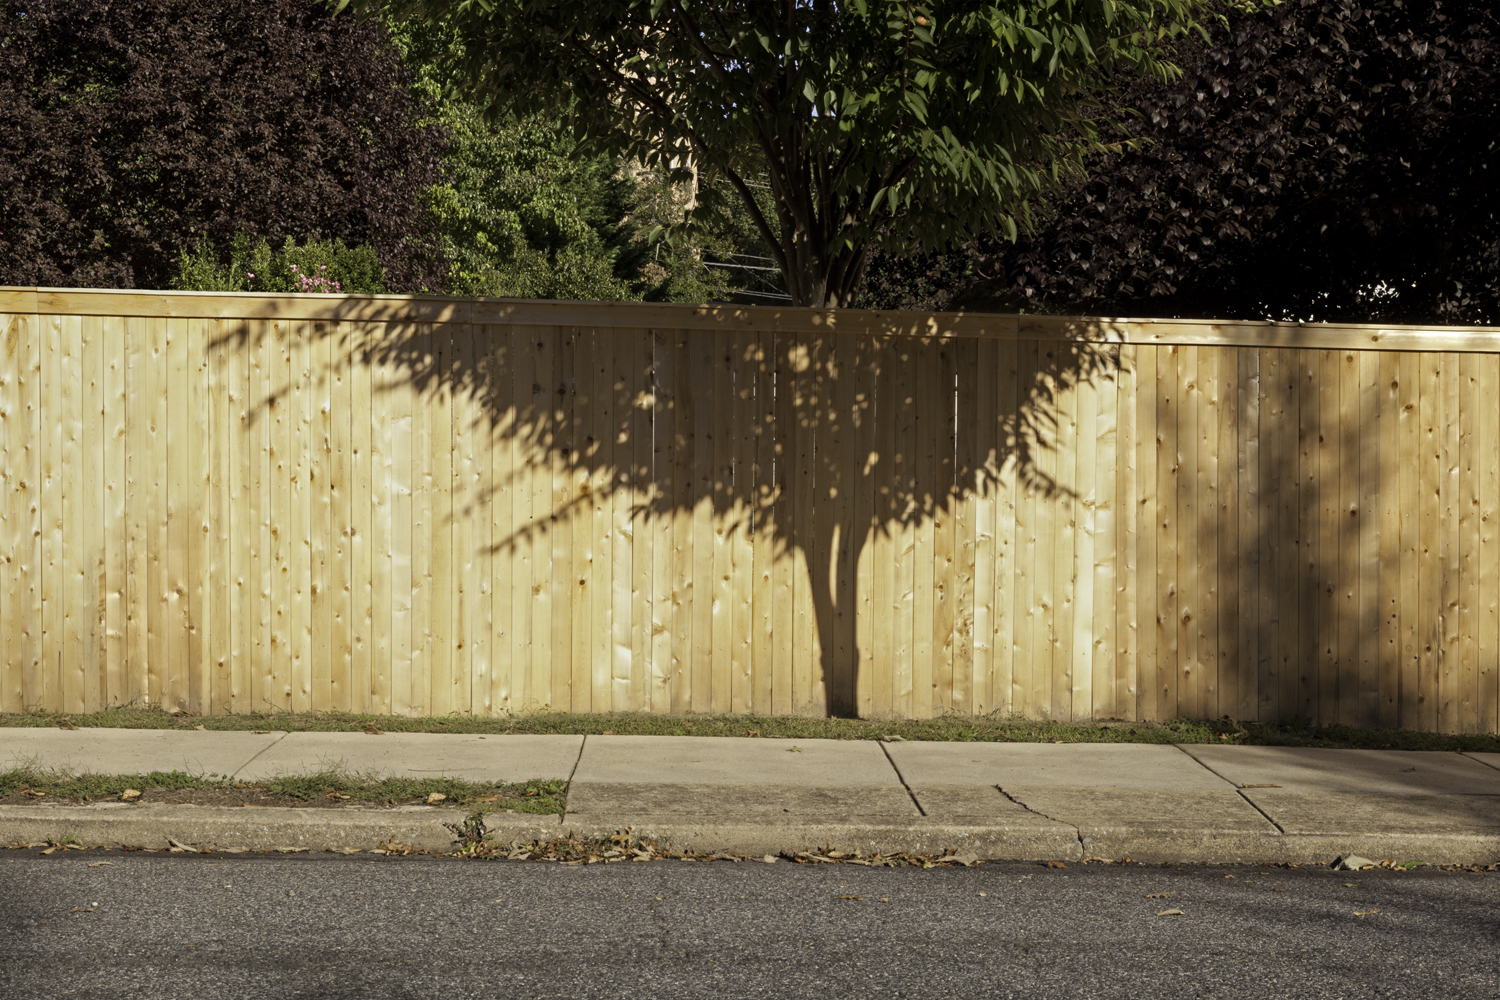 Double Take, 2013, archival pigment print on paper